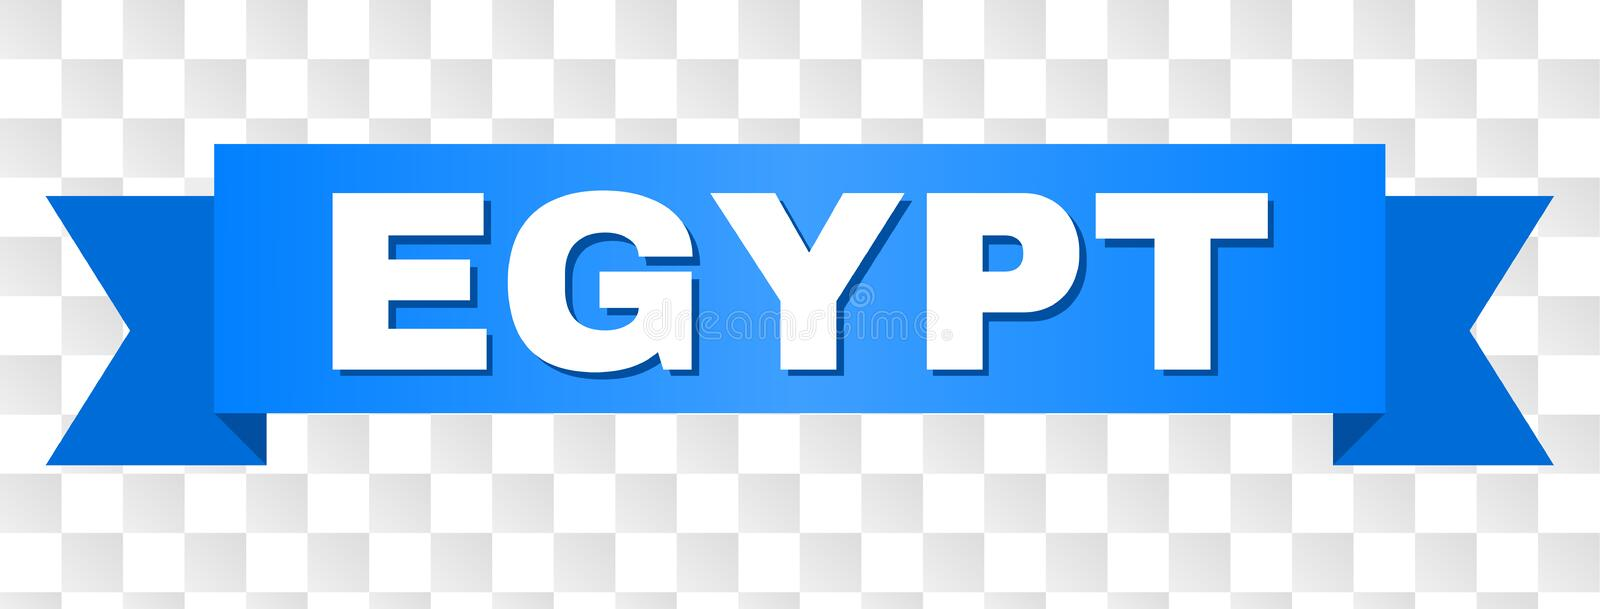 Blue Tape with EGYPT Text. EGYPT text on a ribbon. Designed with white caption and blue tape. Vector banner with EGYPT tag on a transparent background royalty free illustration